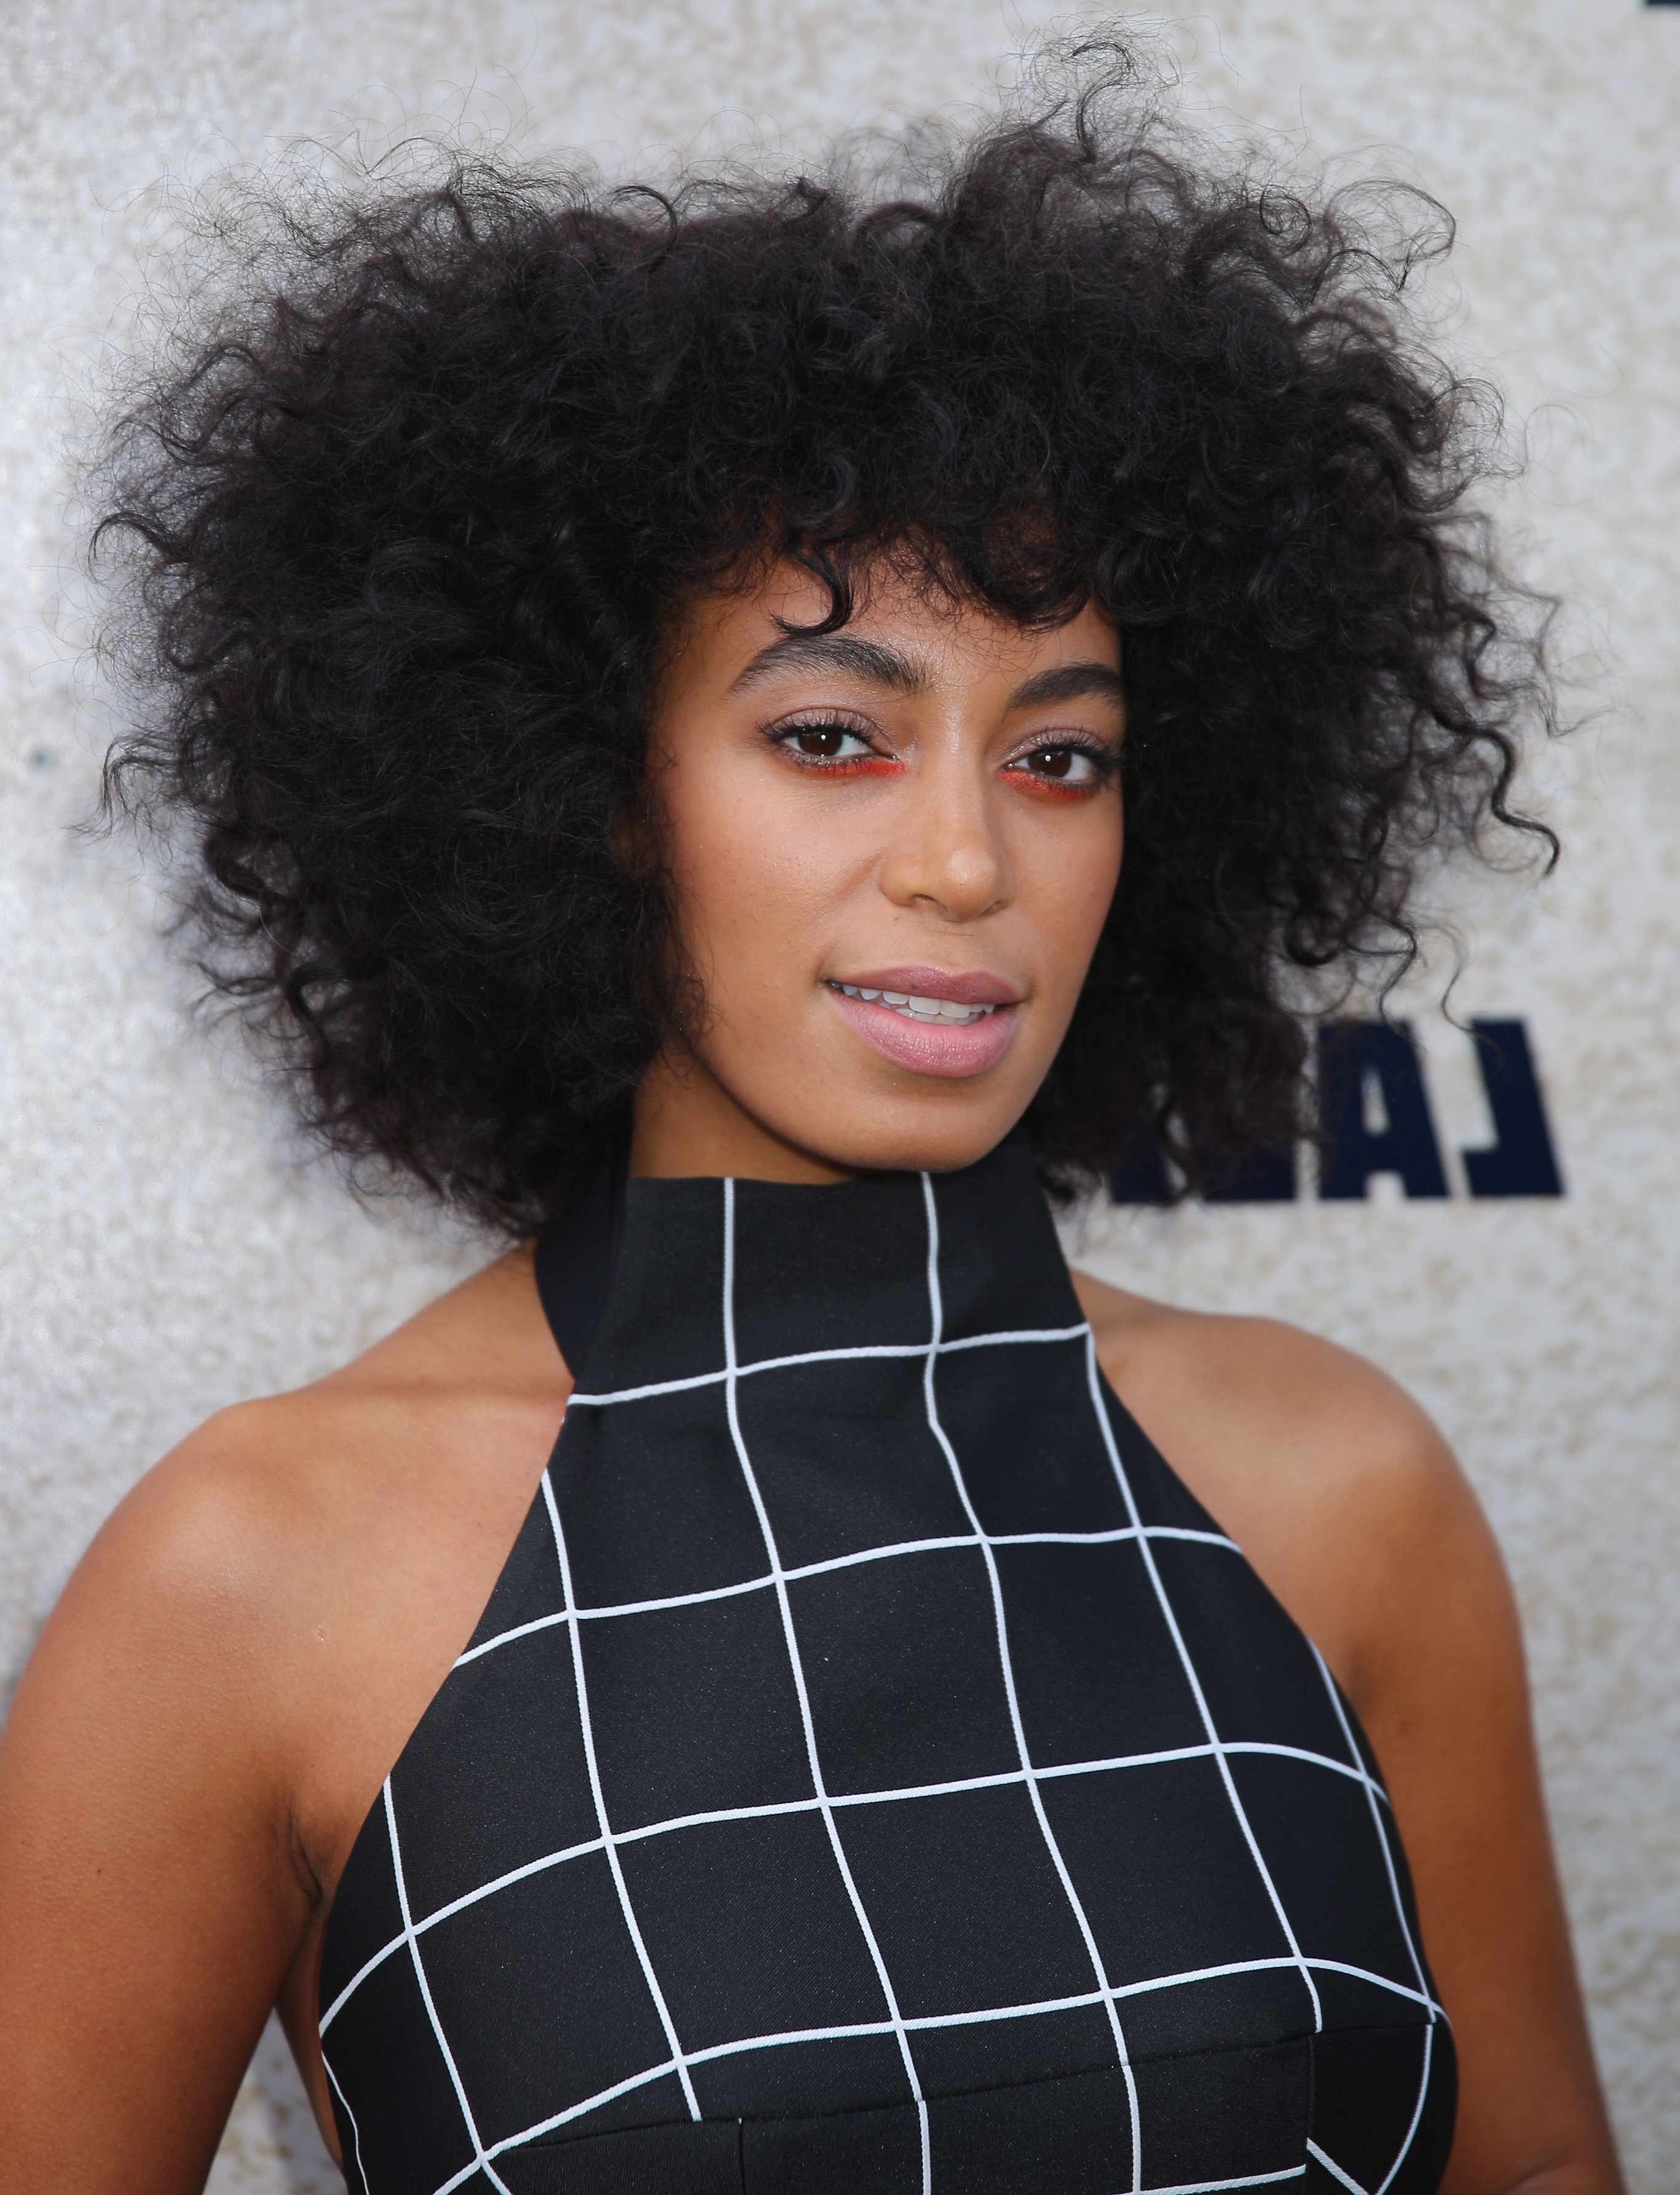 Curly Hairstyles 2019 – 40+ Styles For Every Type Of Curl With Regard To Most Current Curly Black Medium Hairstyles (View 7 of 20)